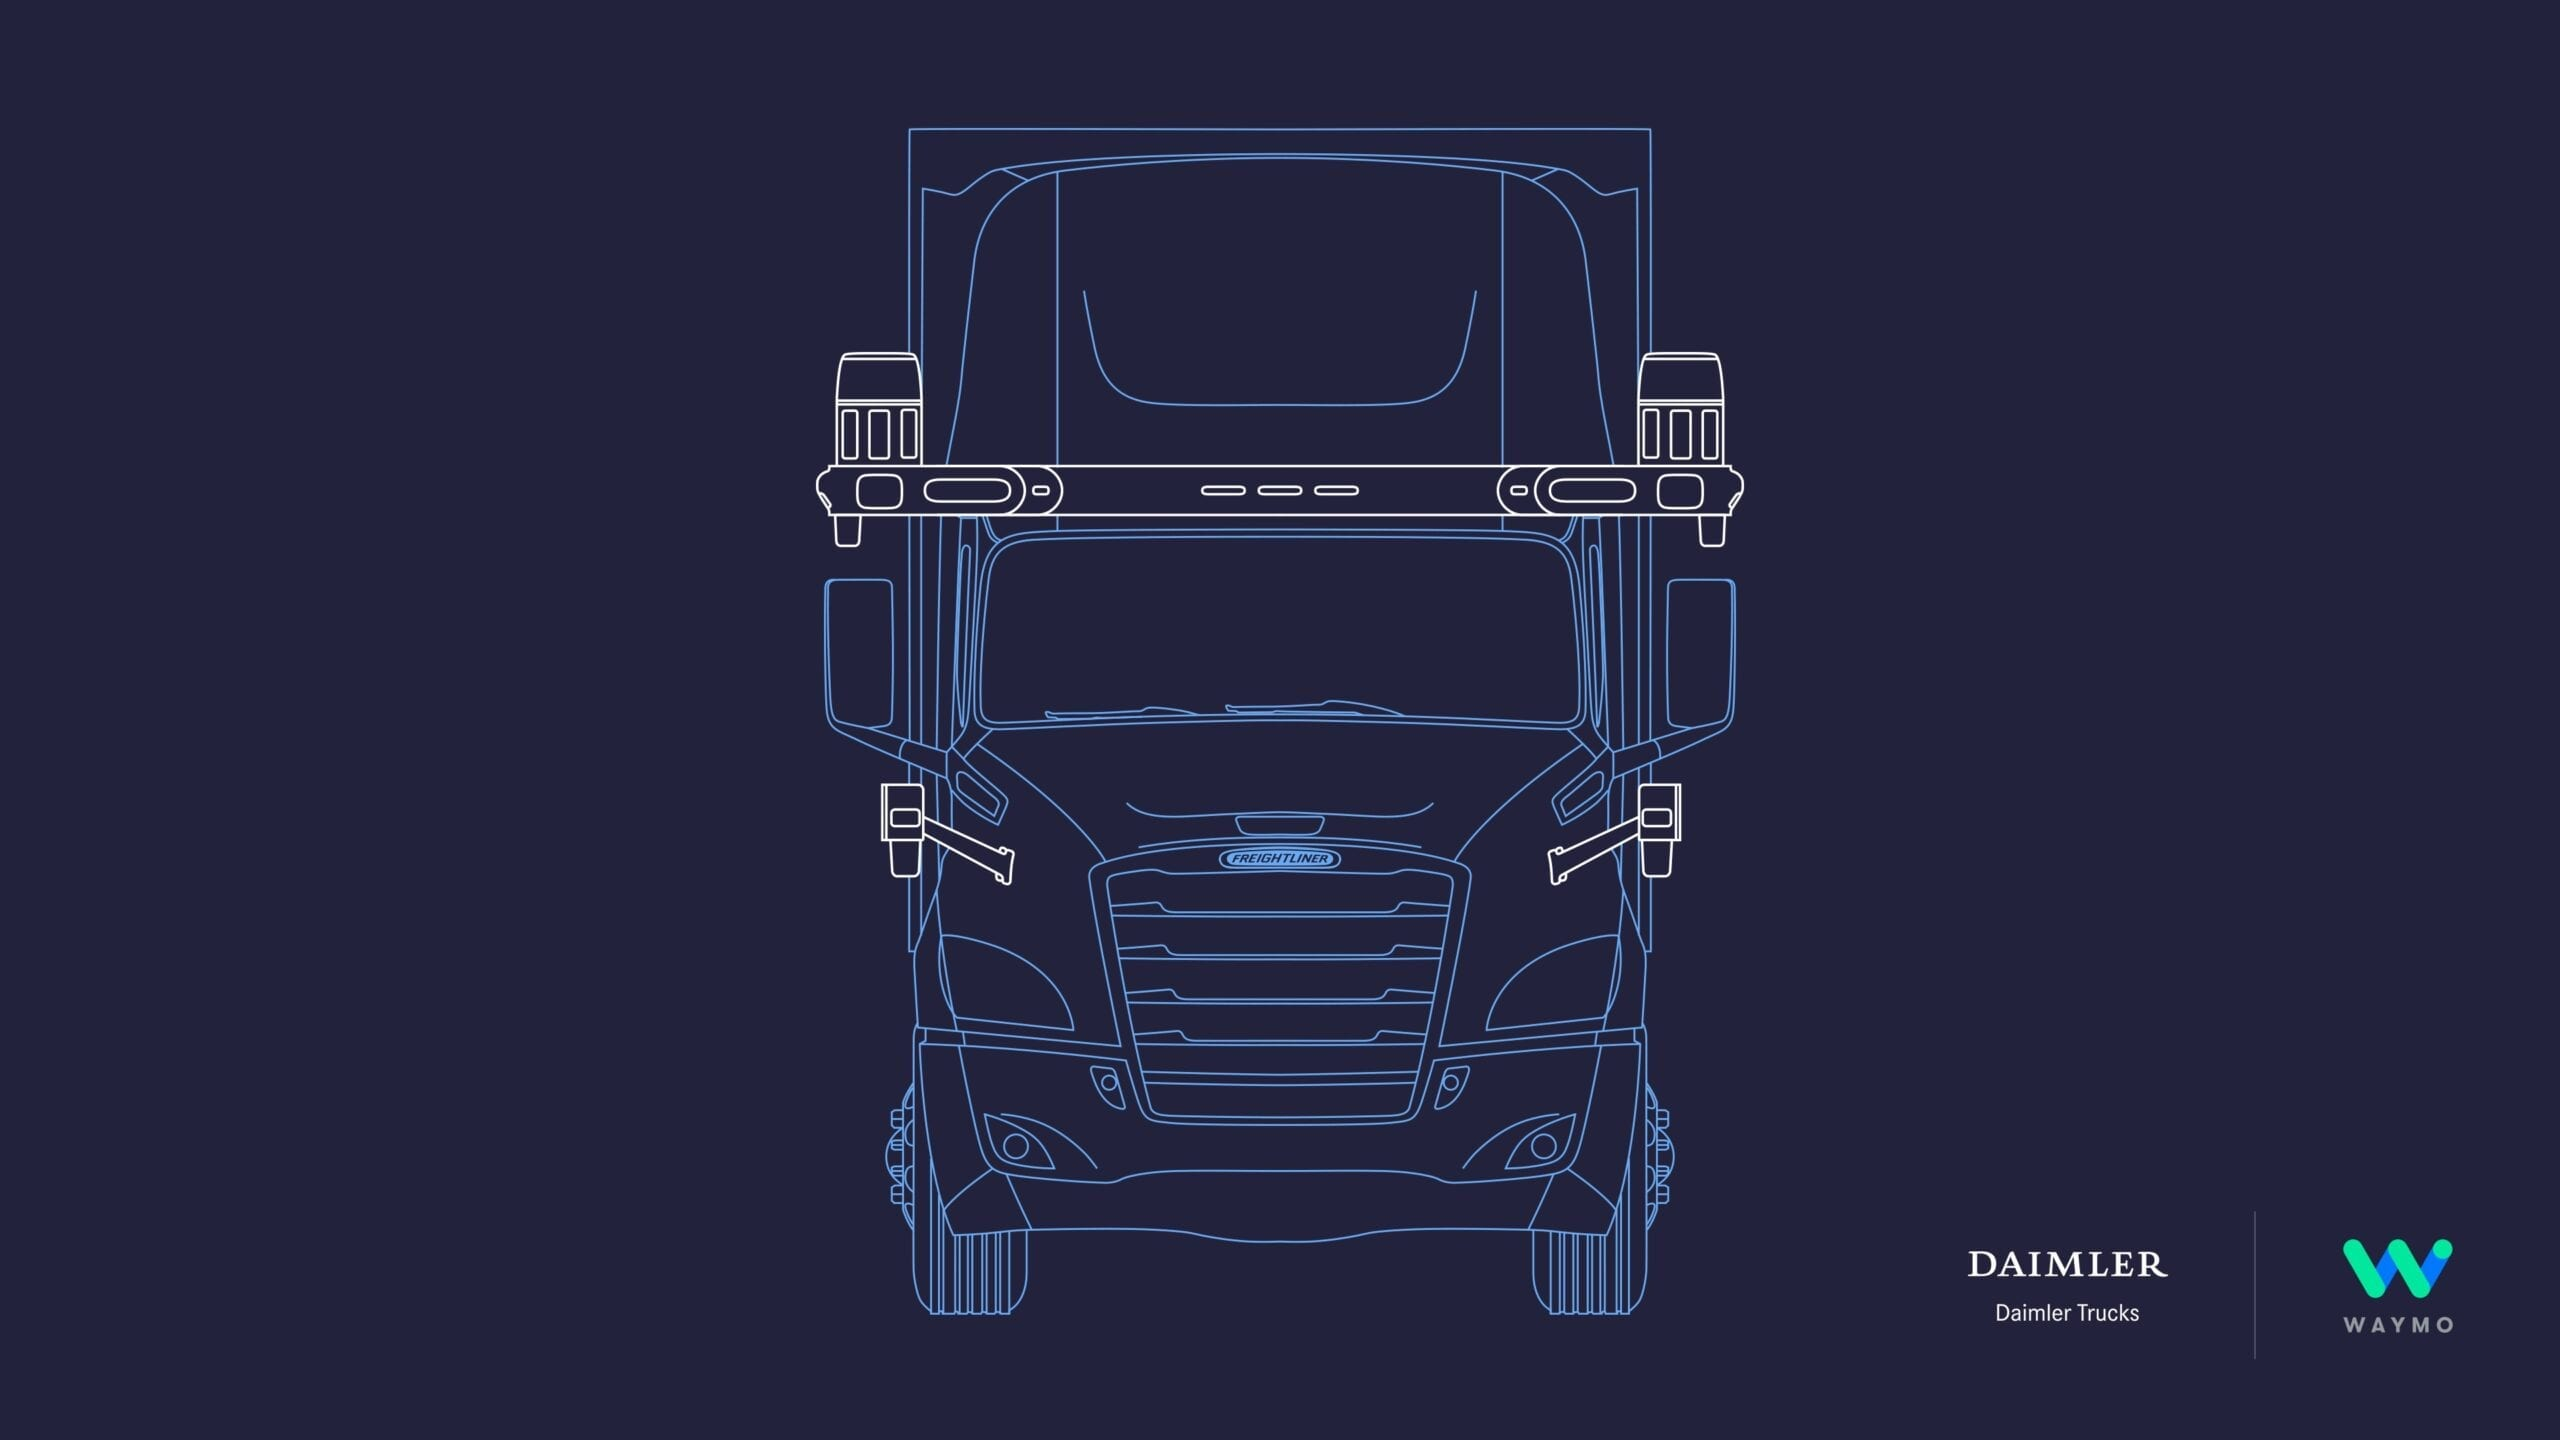 self-driving semi trucks